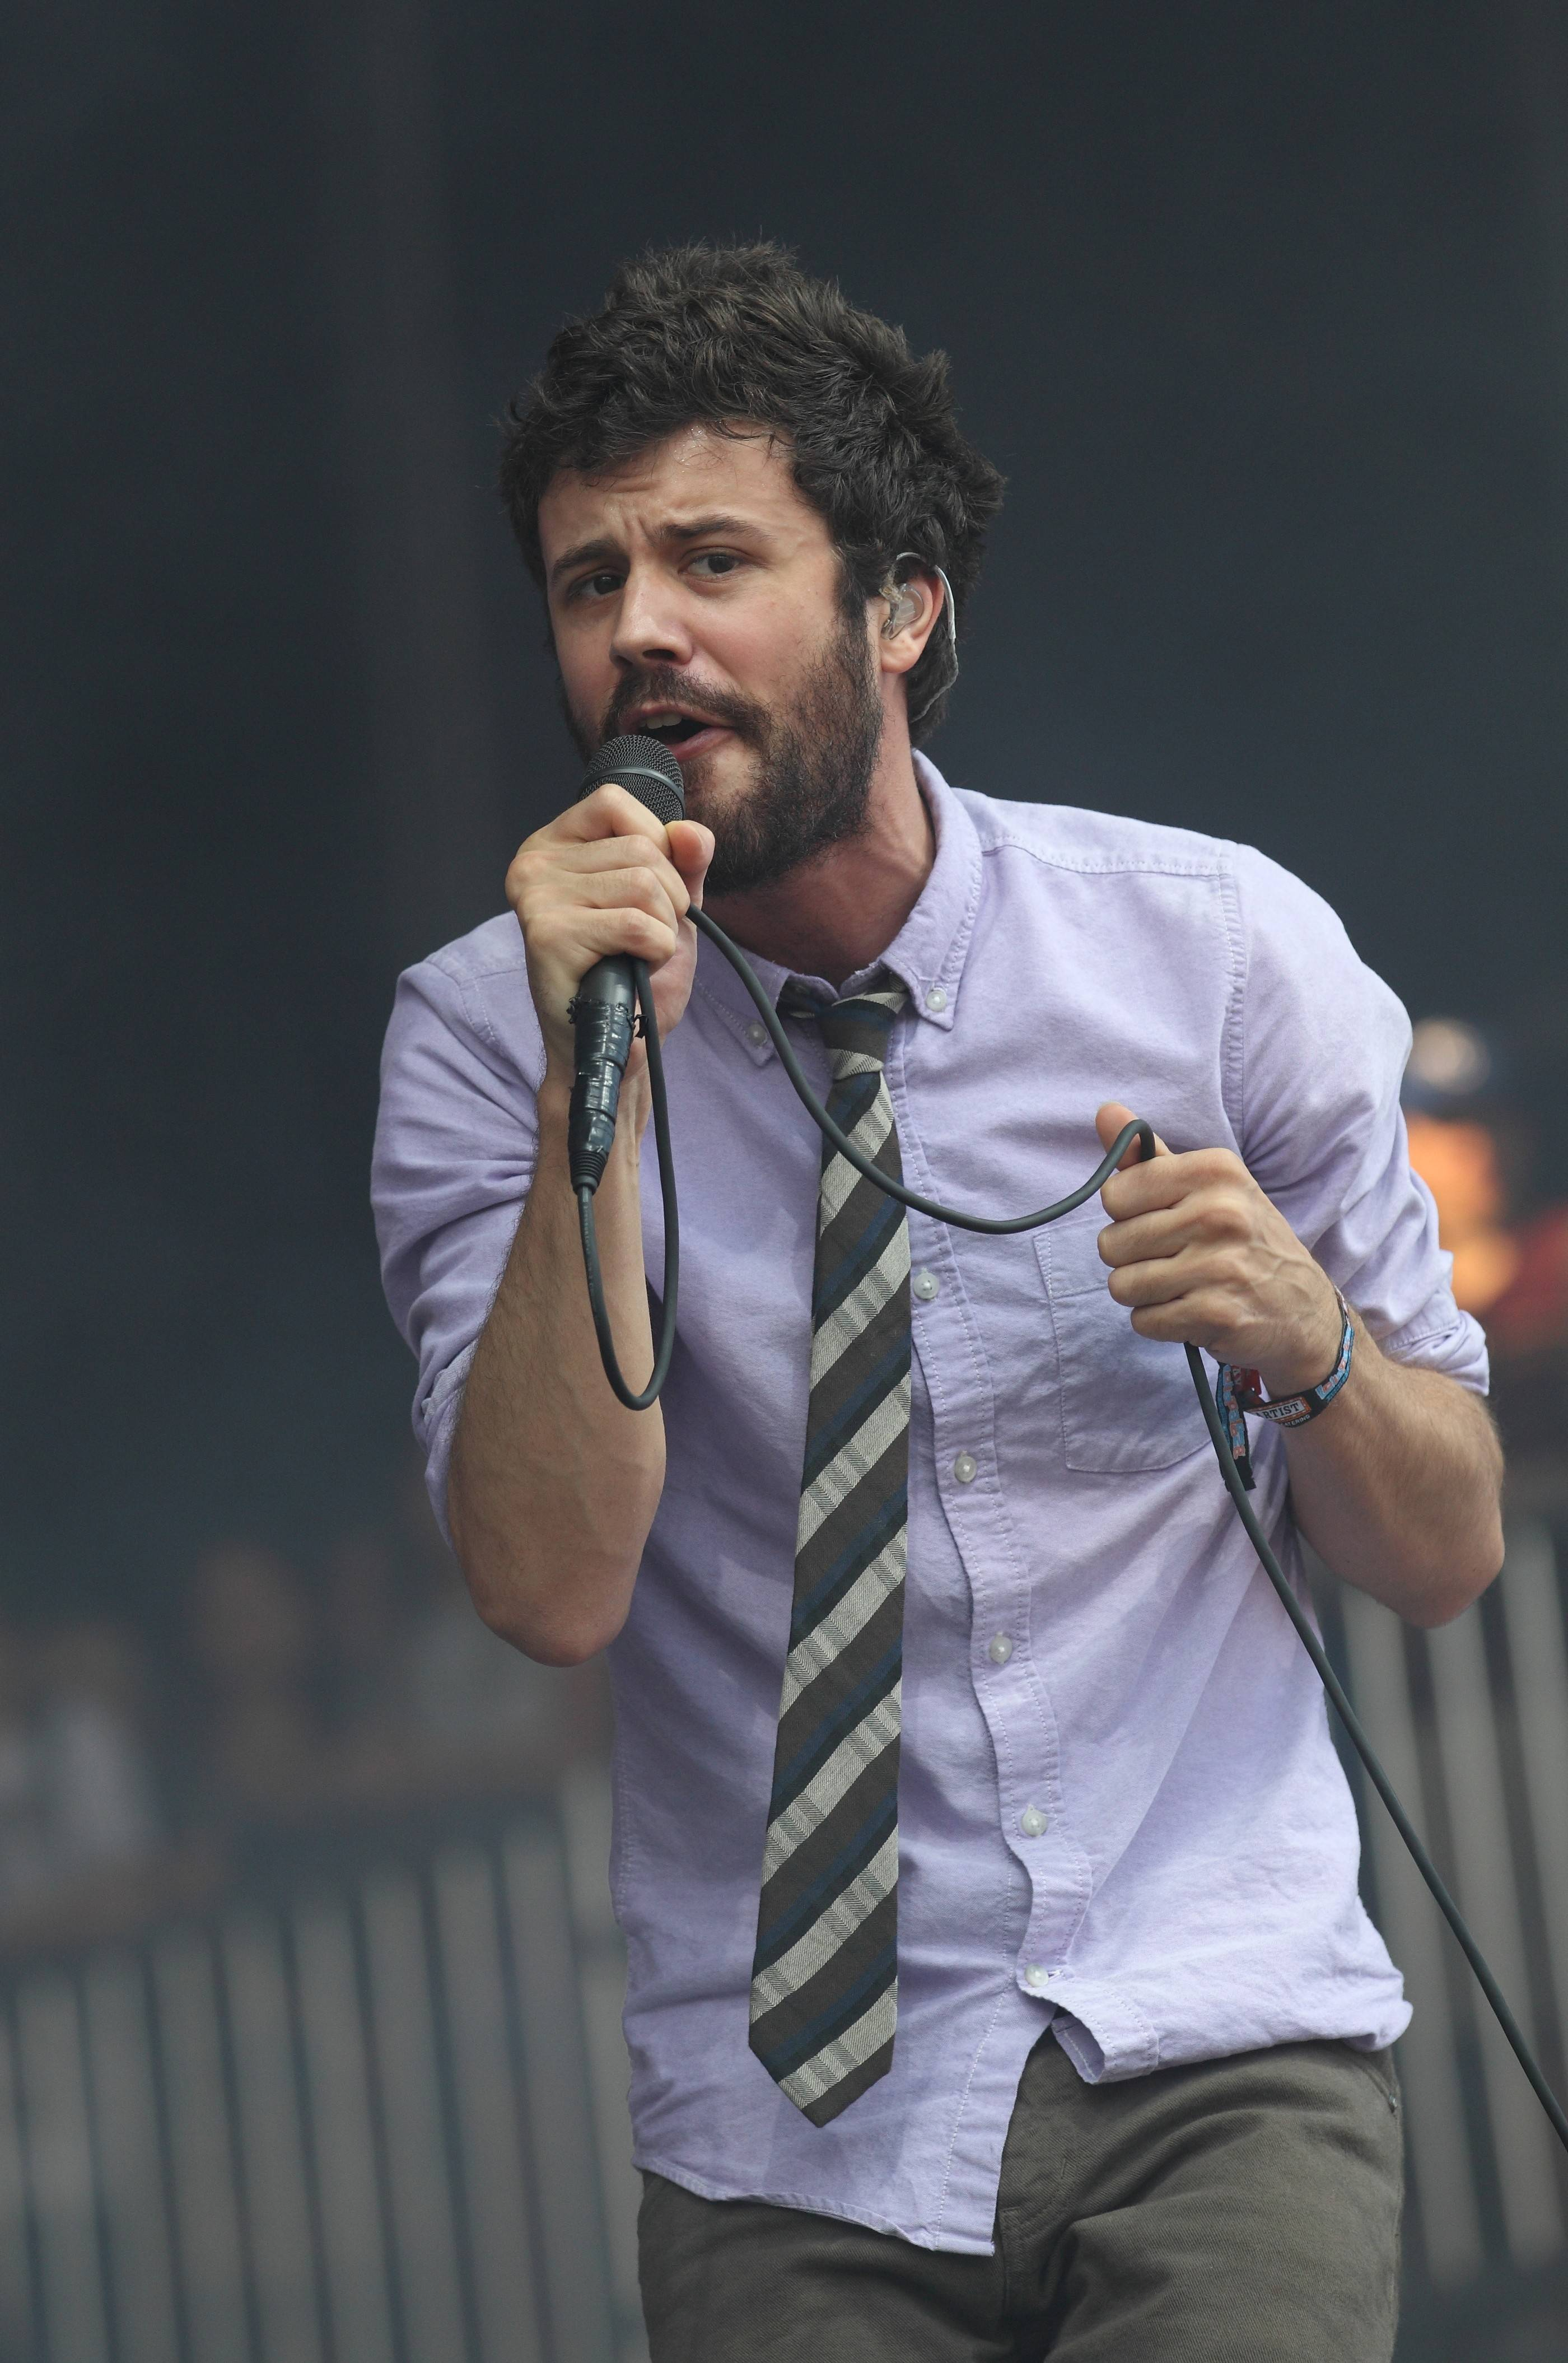 Michael Angelakos and Passion Pit headline the World's Largest Block Party in Chicago Saturday, June 25.